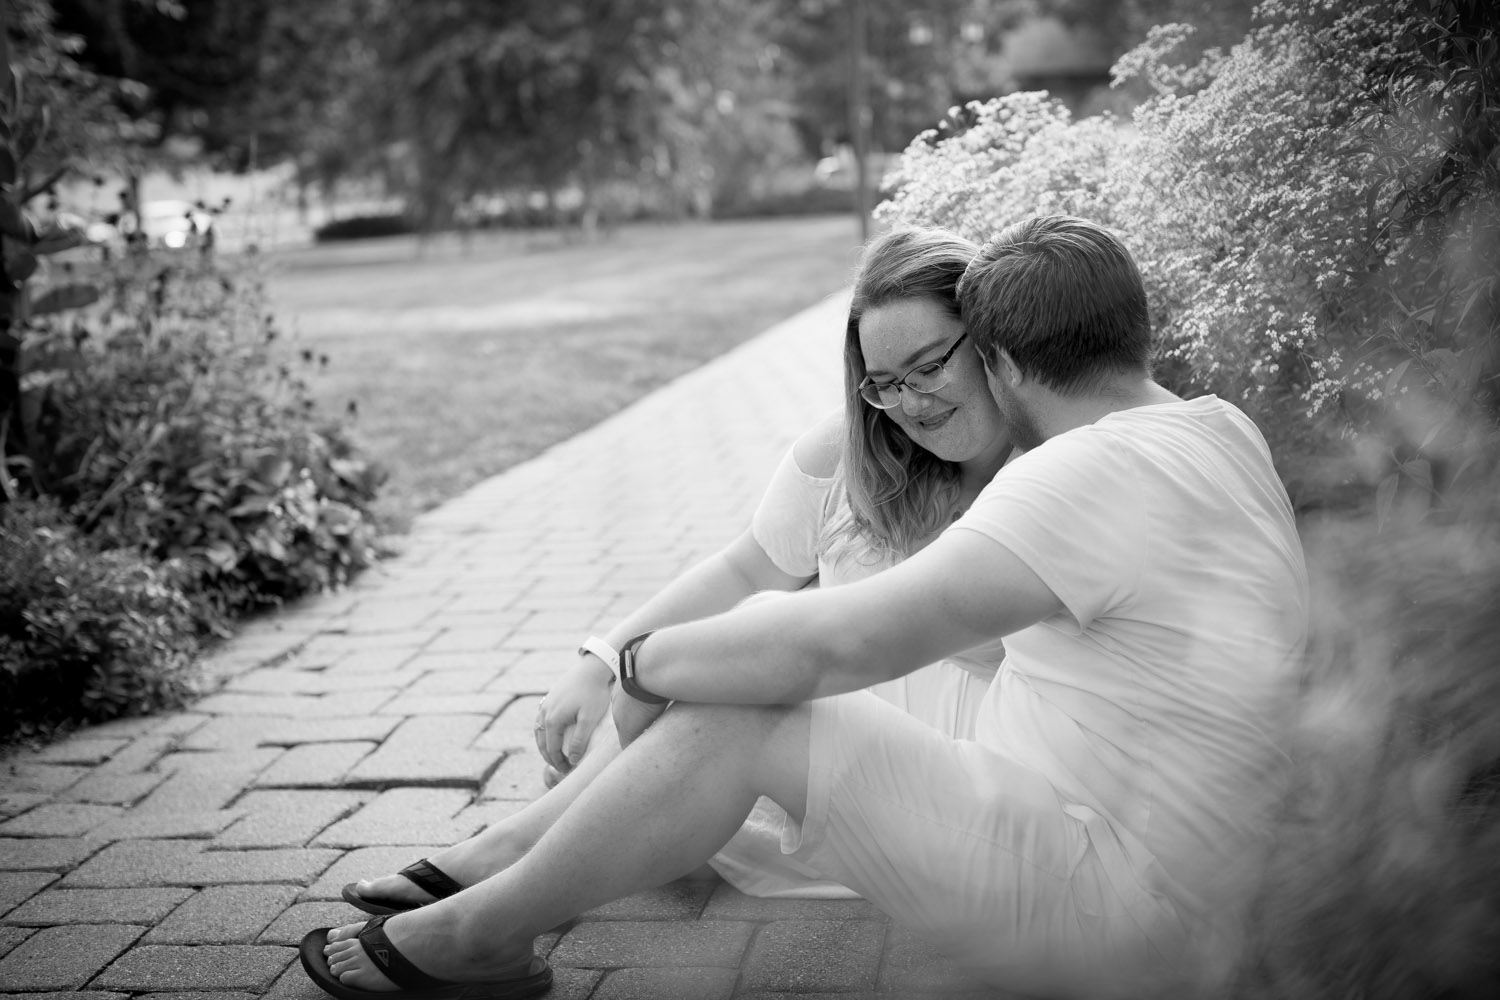 05-minnehaha-falls-minneapolis-wedding-photographer-summer-engagement-photos-black-and-white-wildflowers-mahonen-photography.jpg